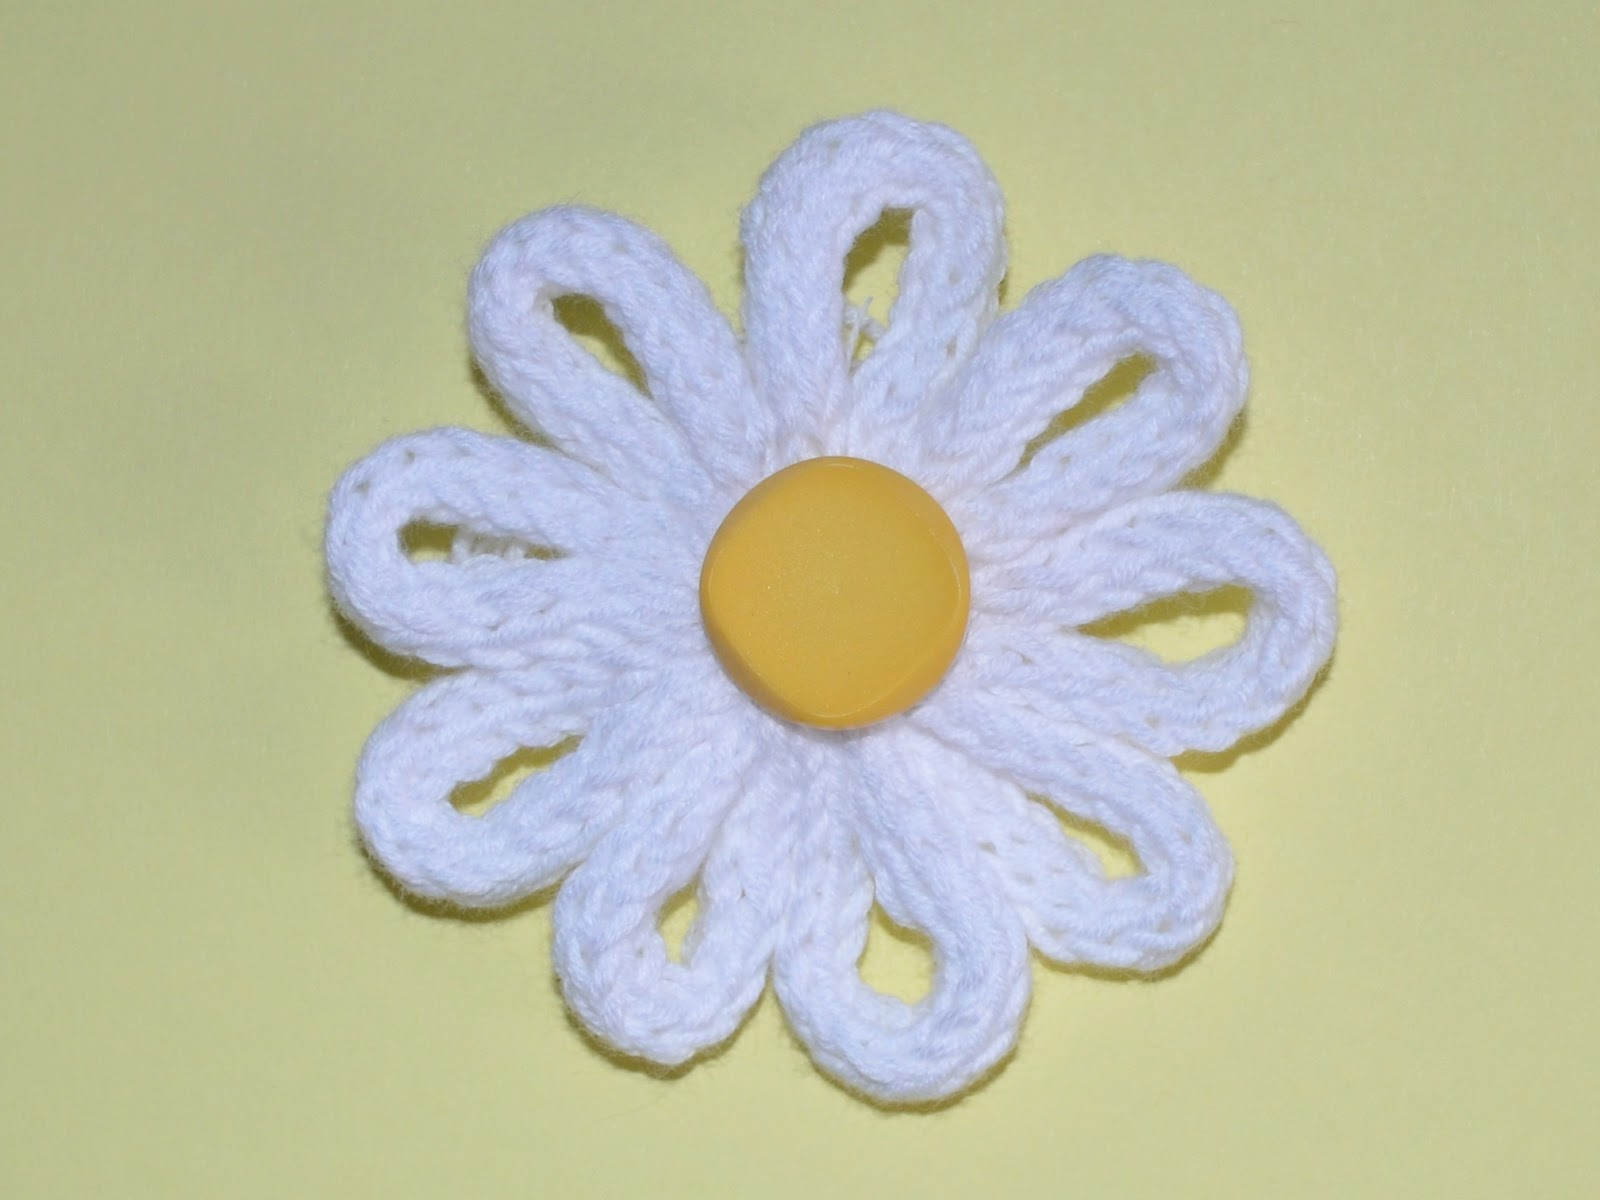 Knitting Flowers Design : Knitted flowers collection vitalina craft